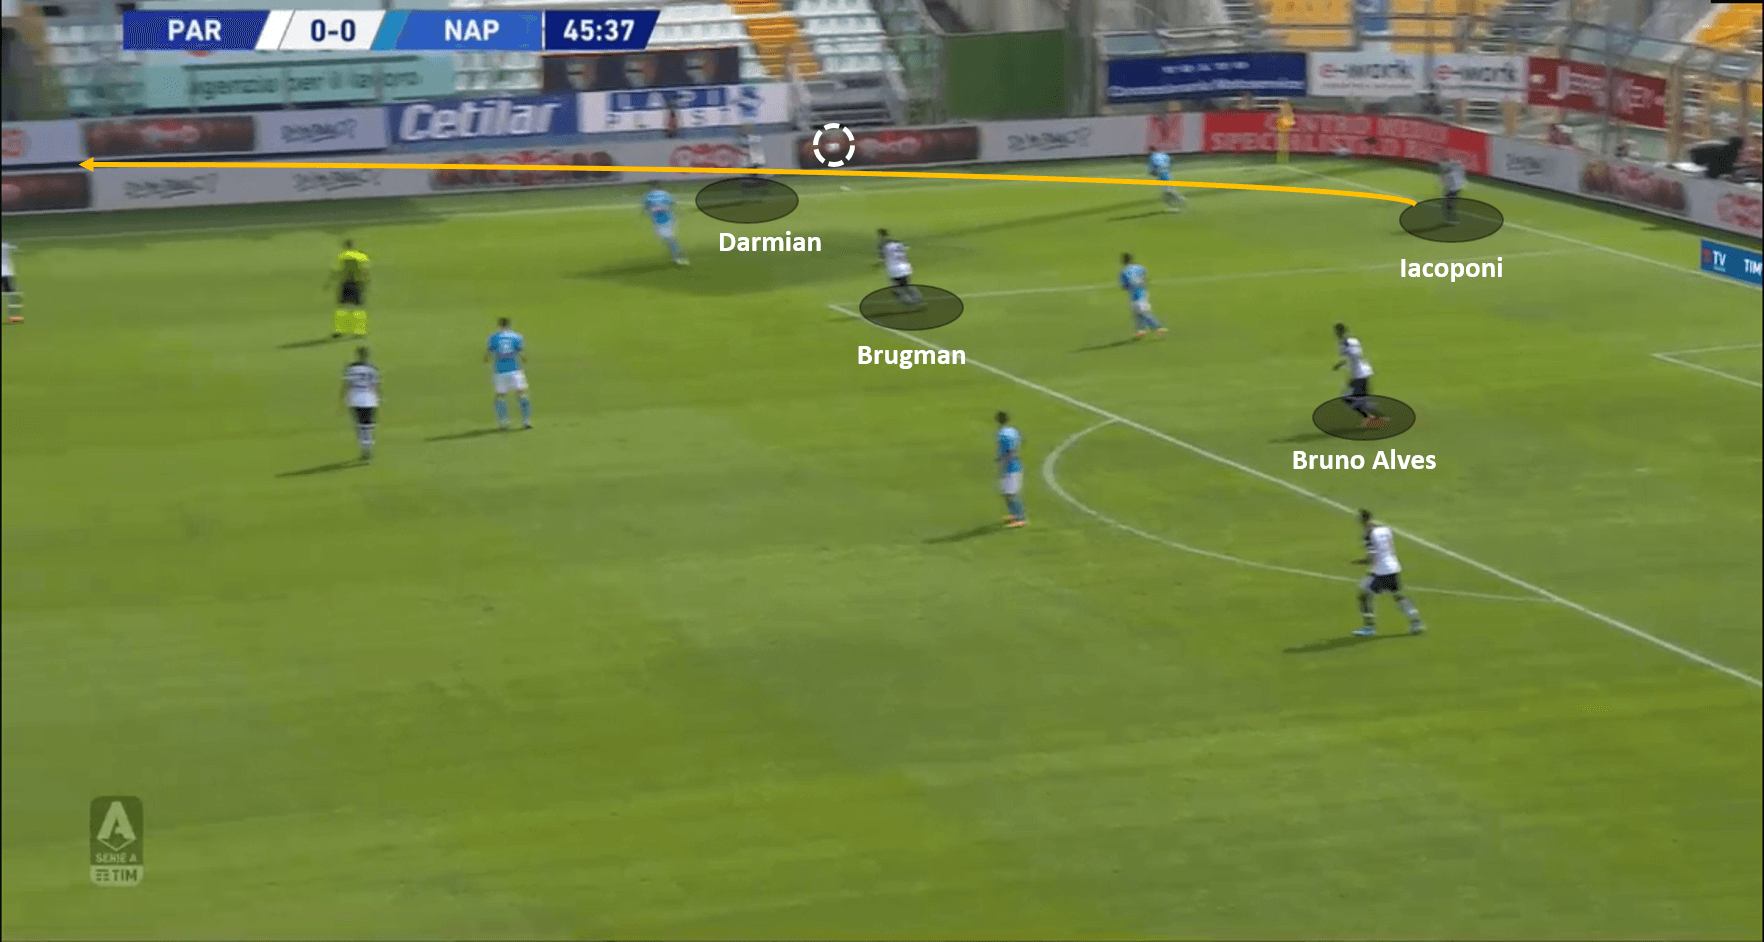 Serie A 2020/21: Parma vs Napoli – tactical analysis tactics